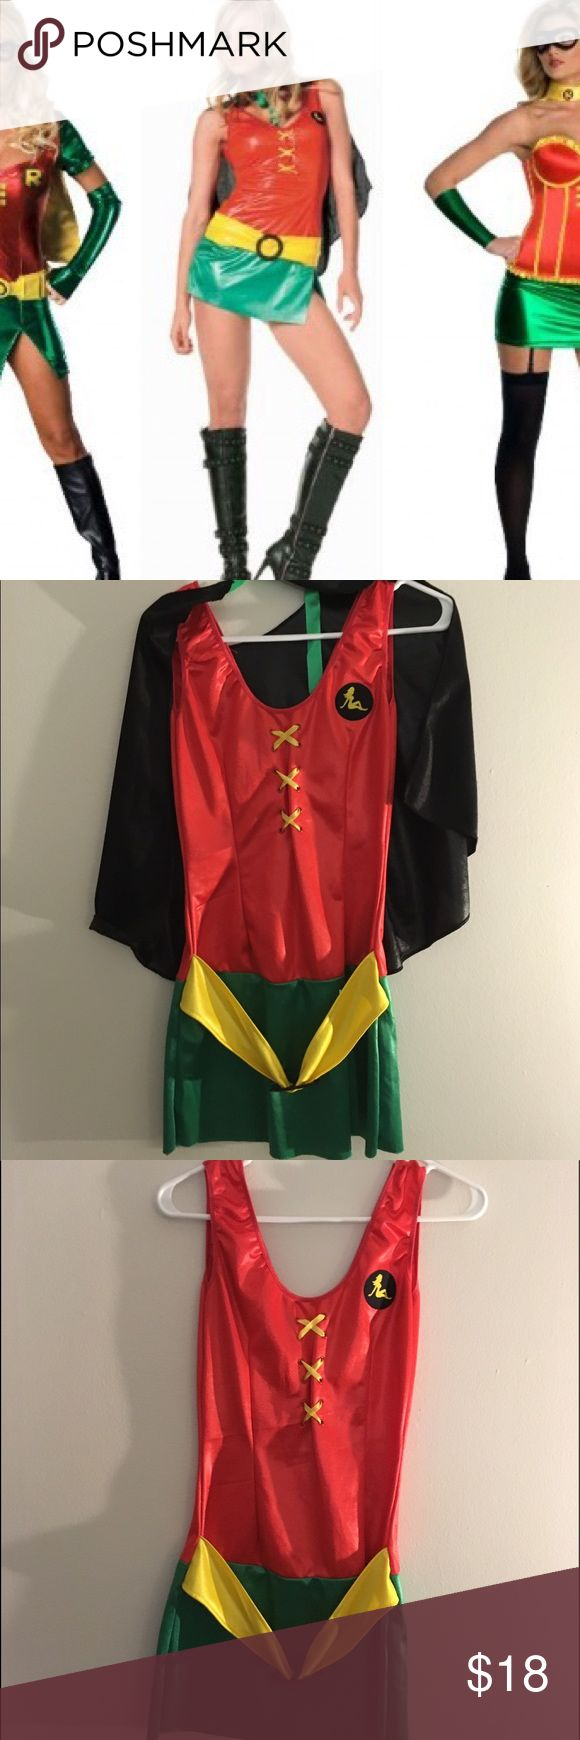 How to make your own female sonic character ehow - Female Robin Super Hero Costume